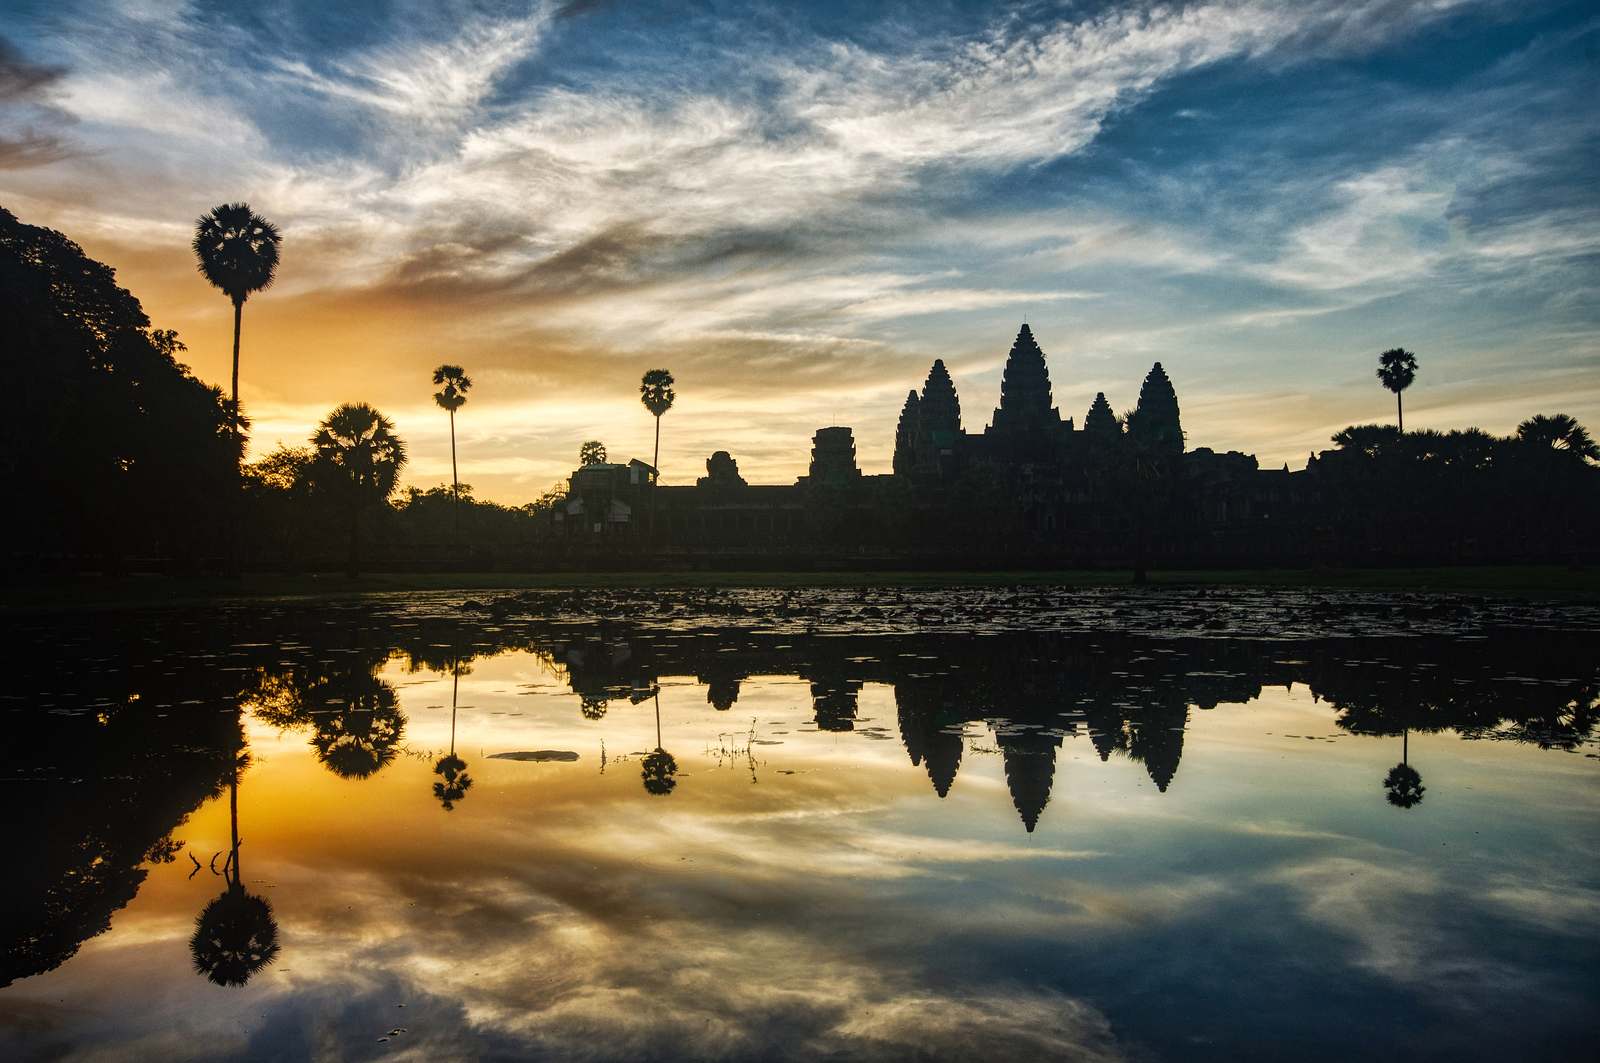 Morning in Angkor Wat